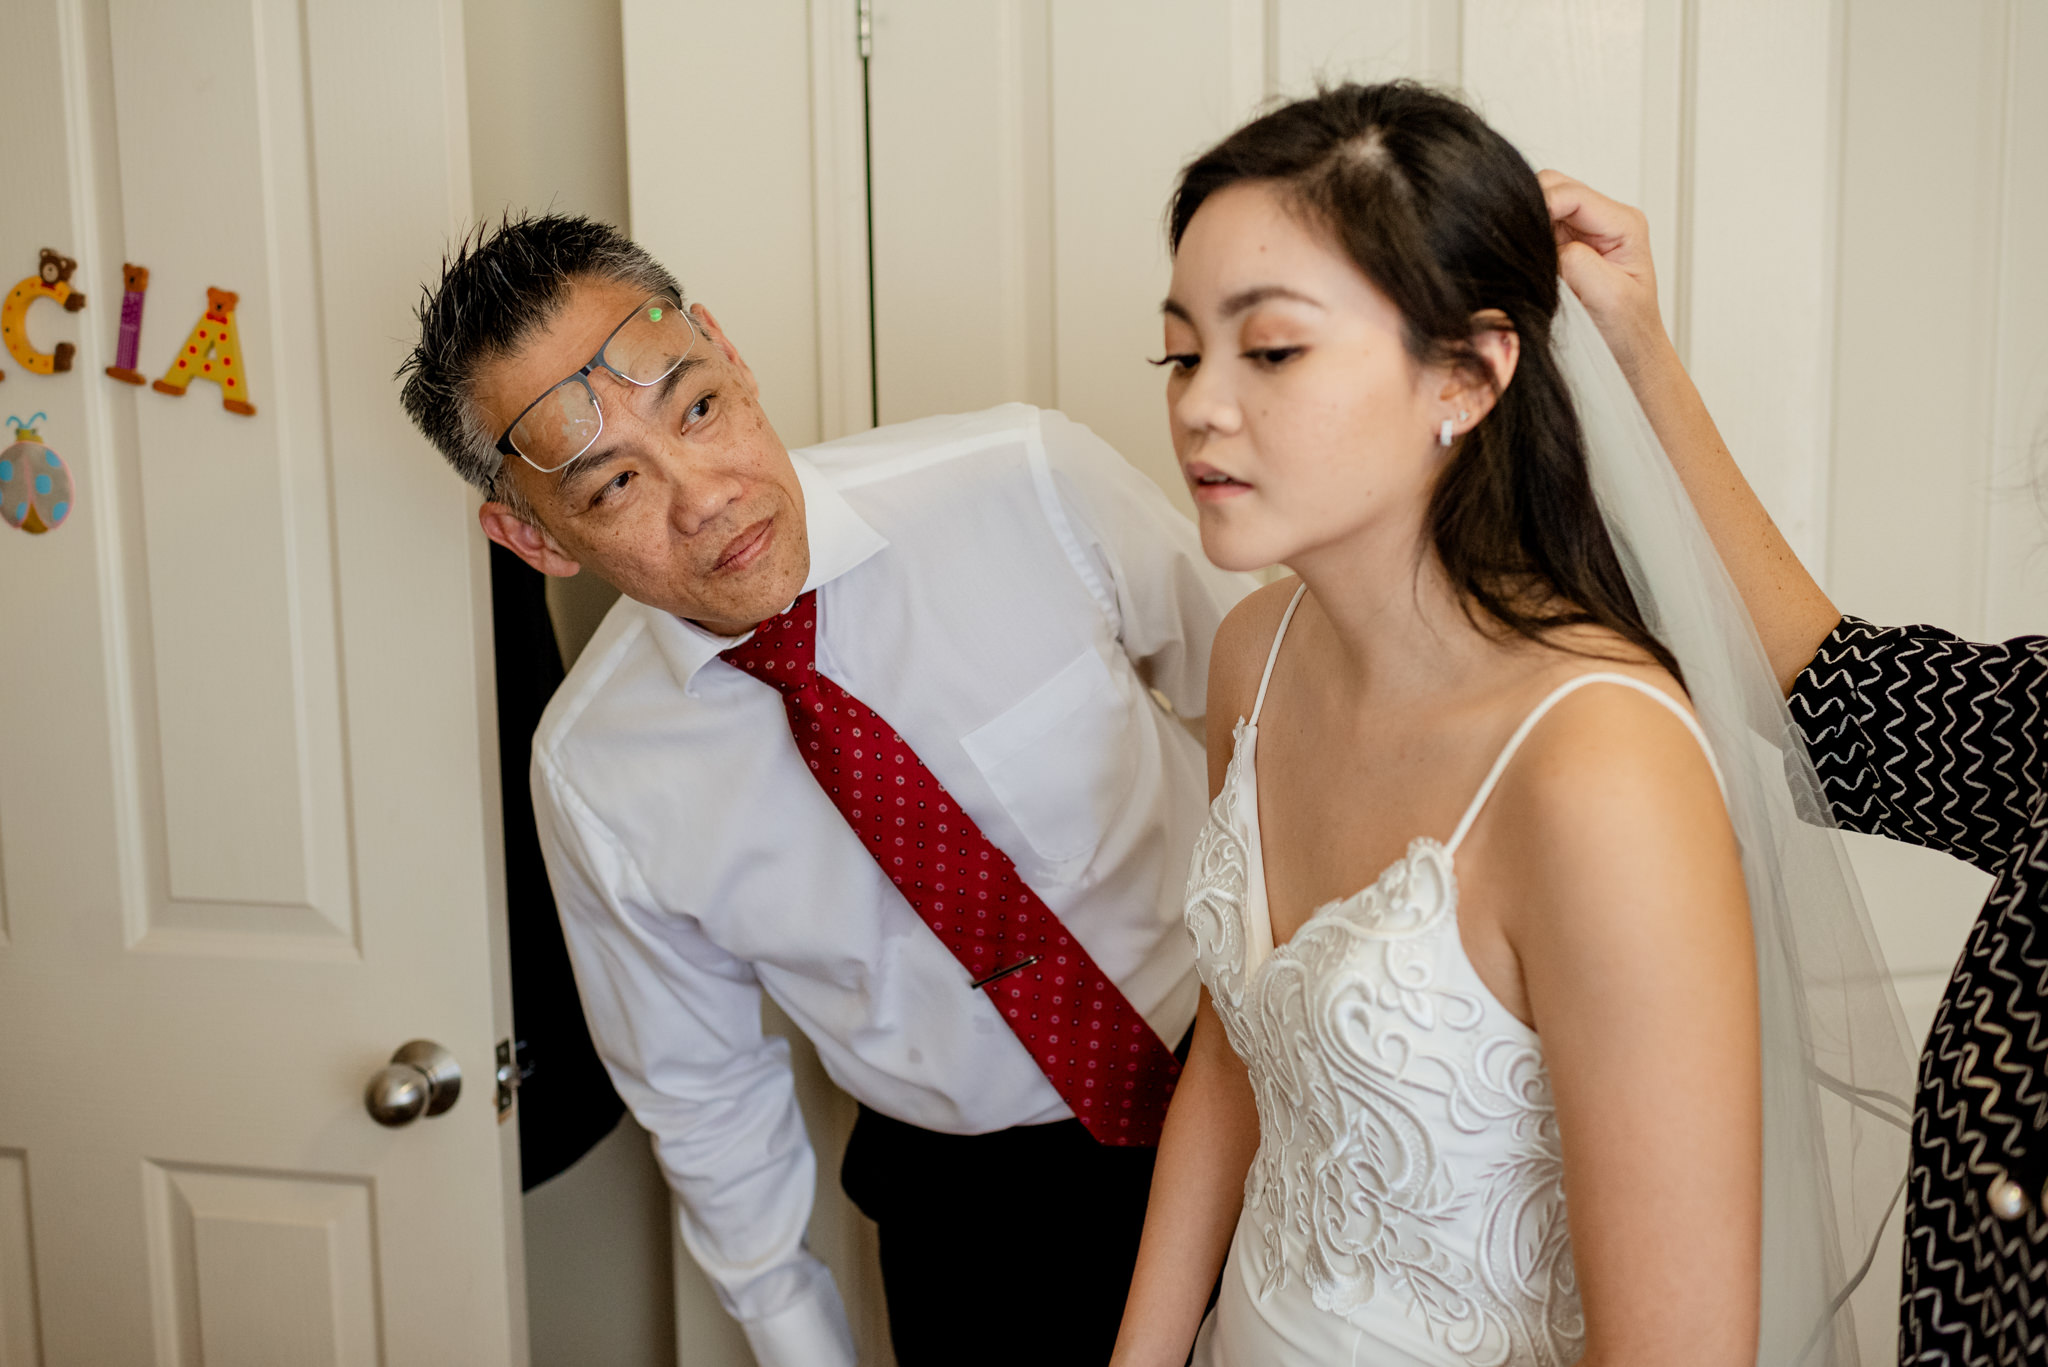 The father-of-the-bride tilts and looks at his daughter as she has her wedding veil put in her hair